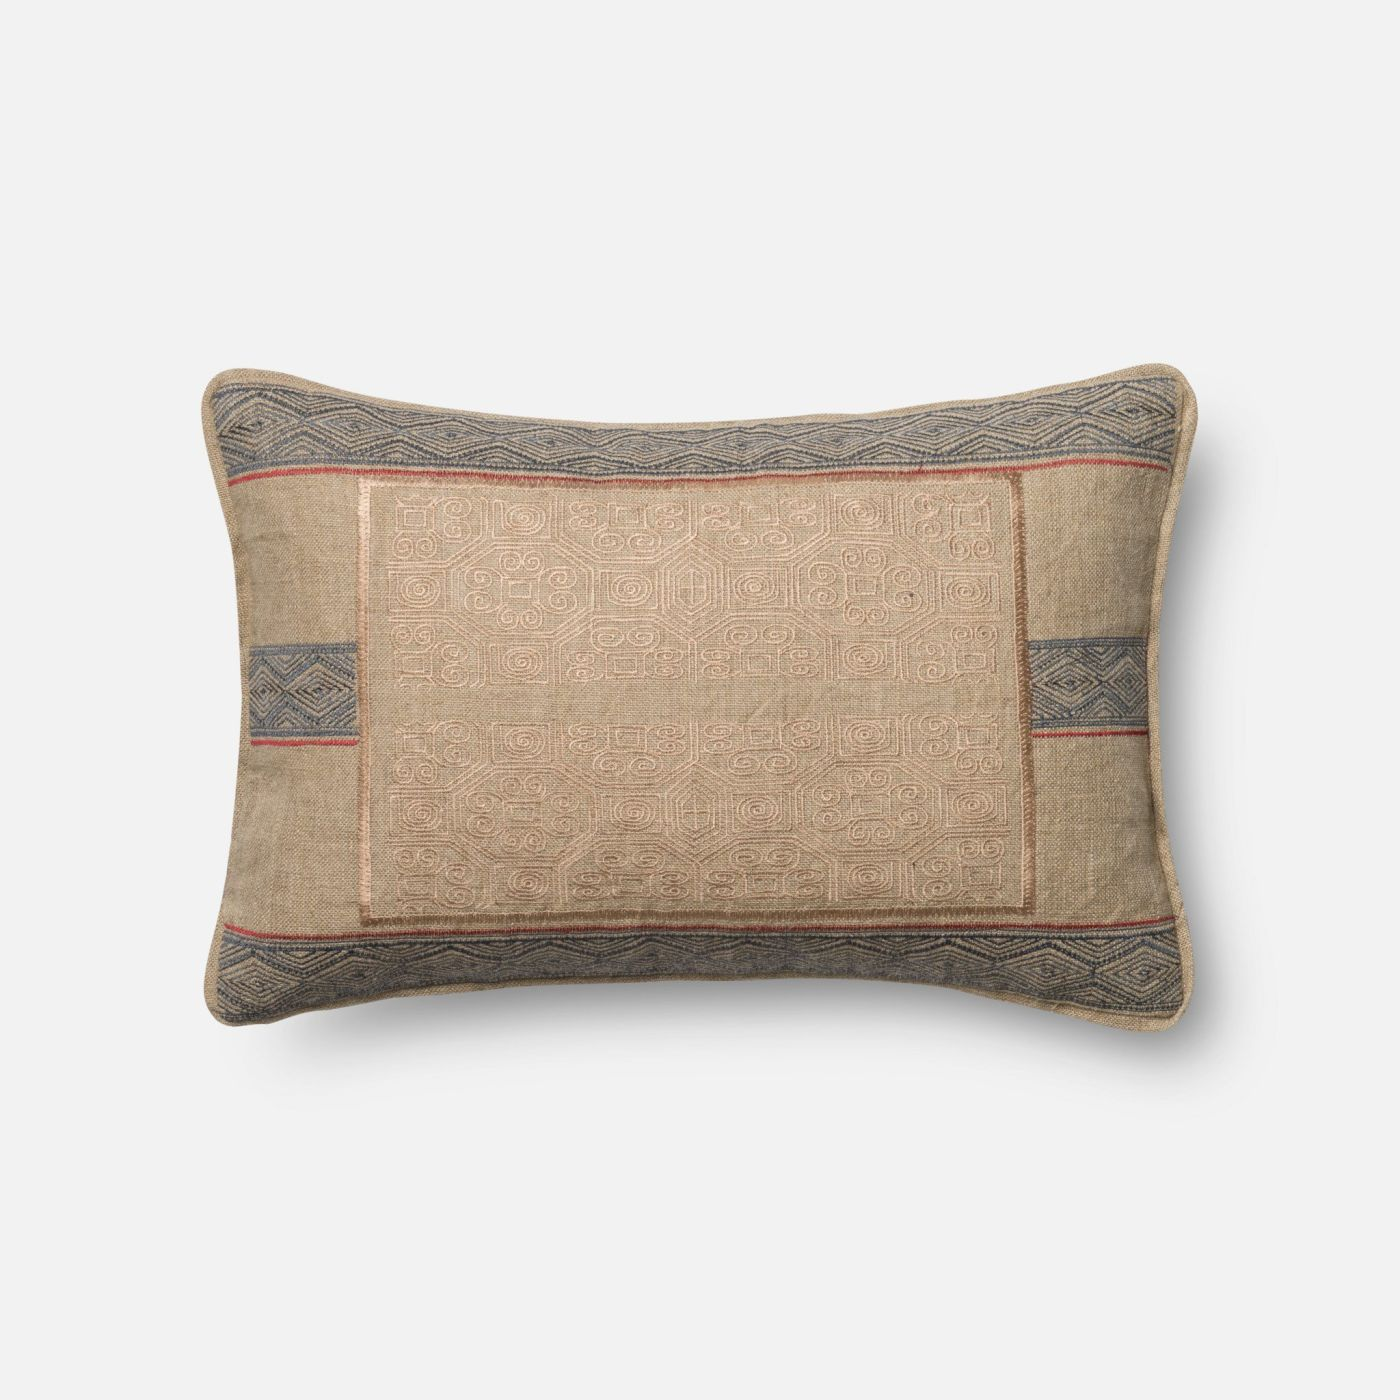 Throw Pillows Under 5 Dollars : Loloi Rugs Loloi Beige / Blue Decorative Throw Pillow (P0431) DSETP0431BEBBPIL5. Only $89.00 at ...